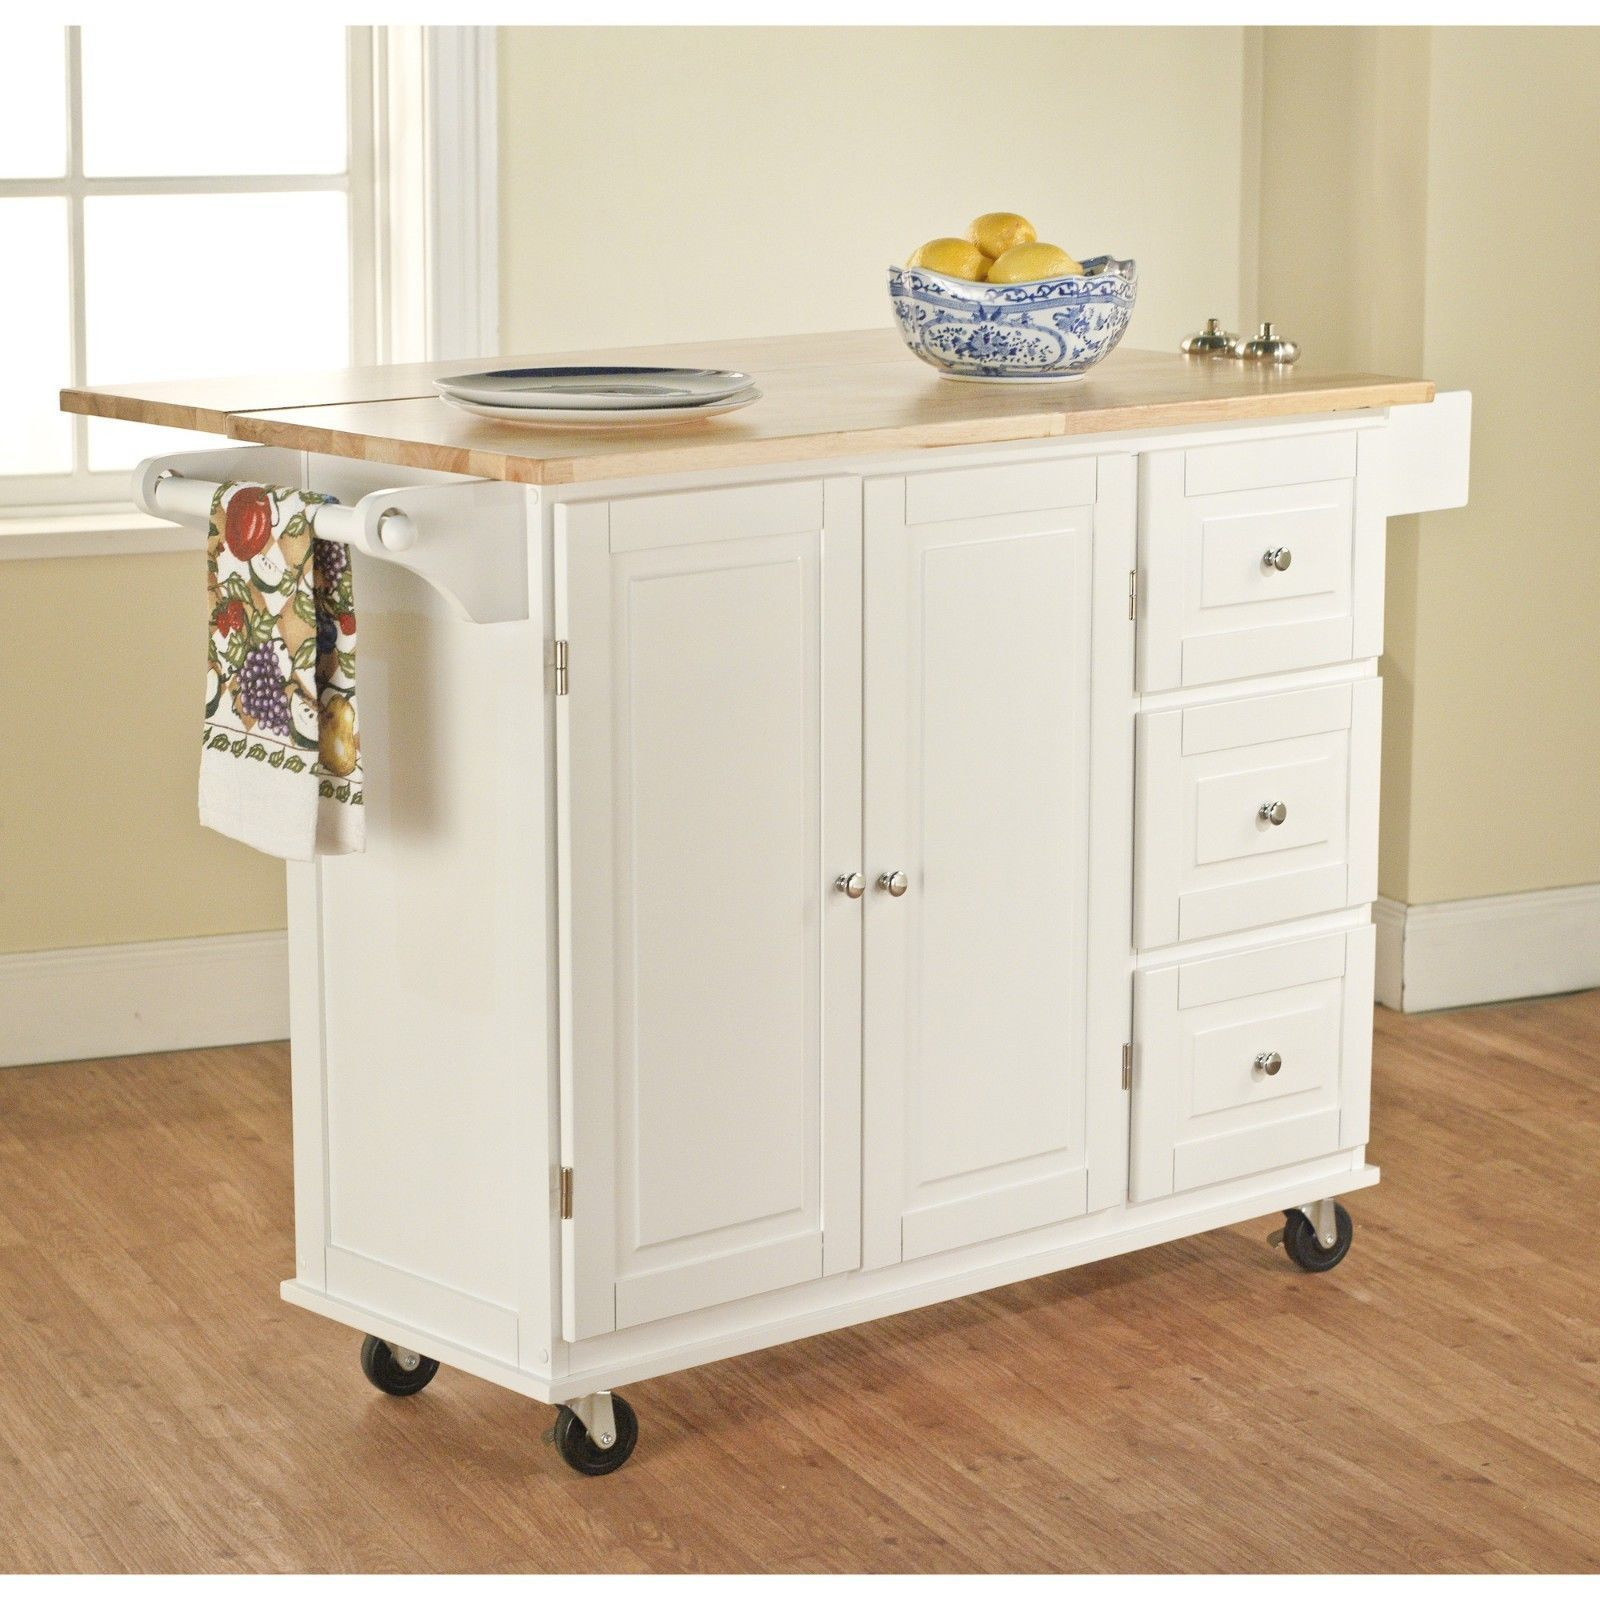 Rolling Kitchen Cart Pictures Ideas   Http://therockbargrill.com/rolling